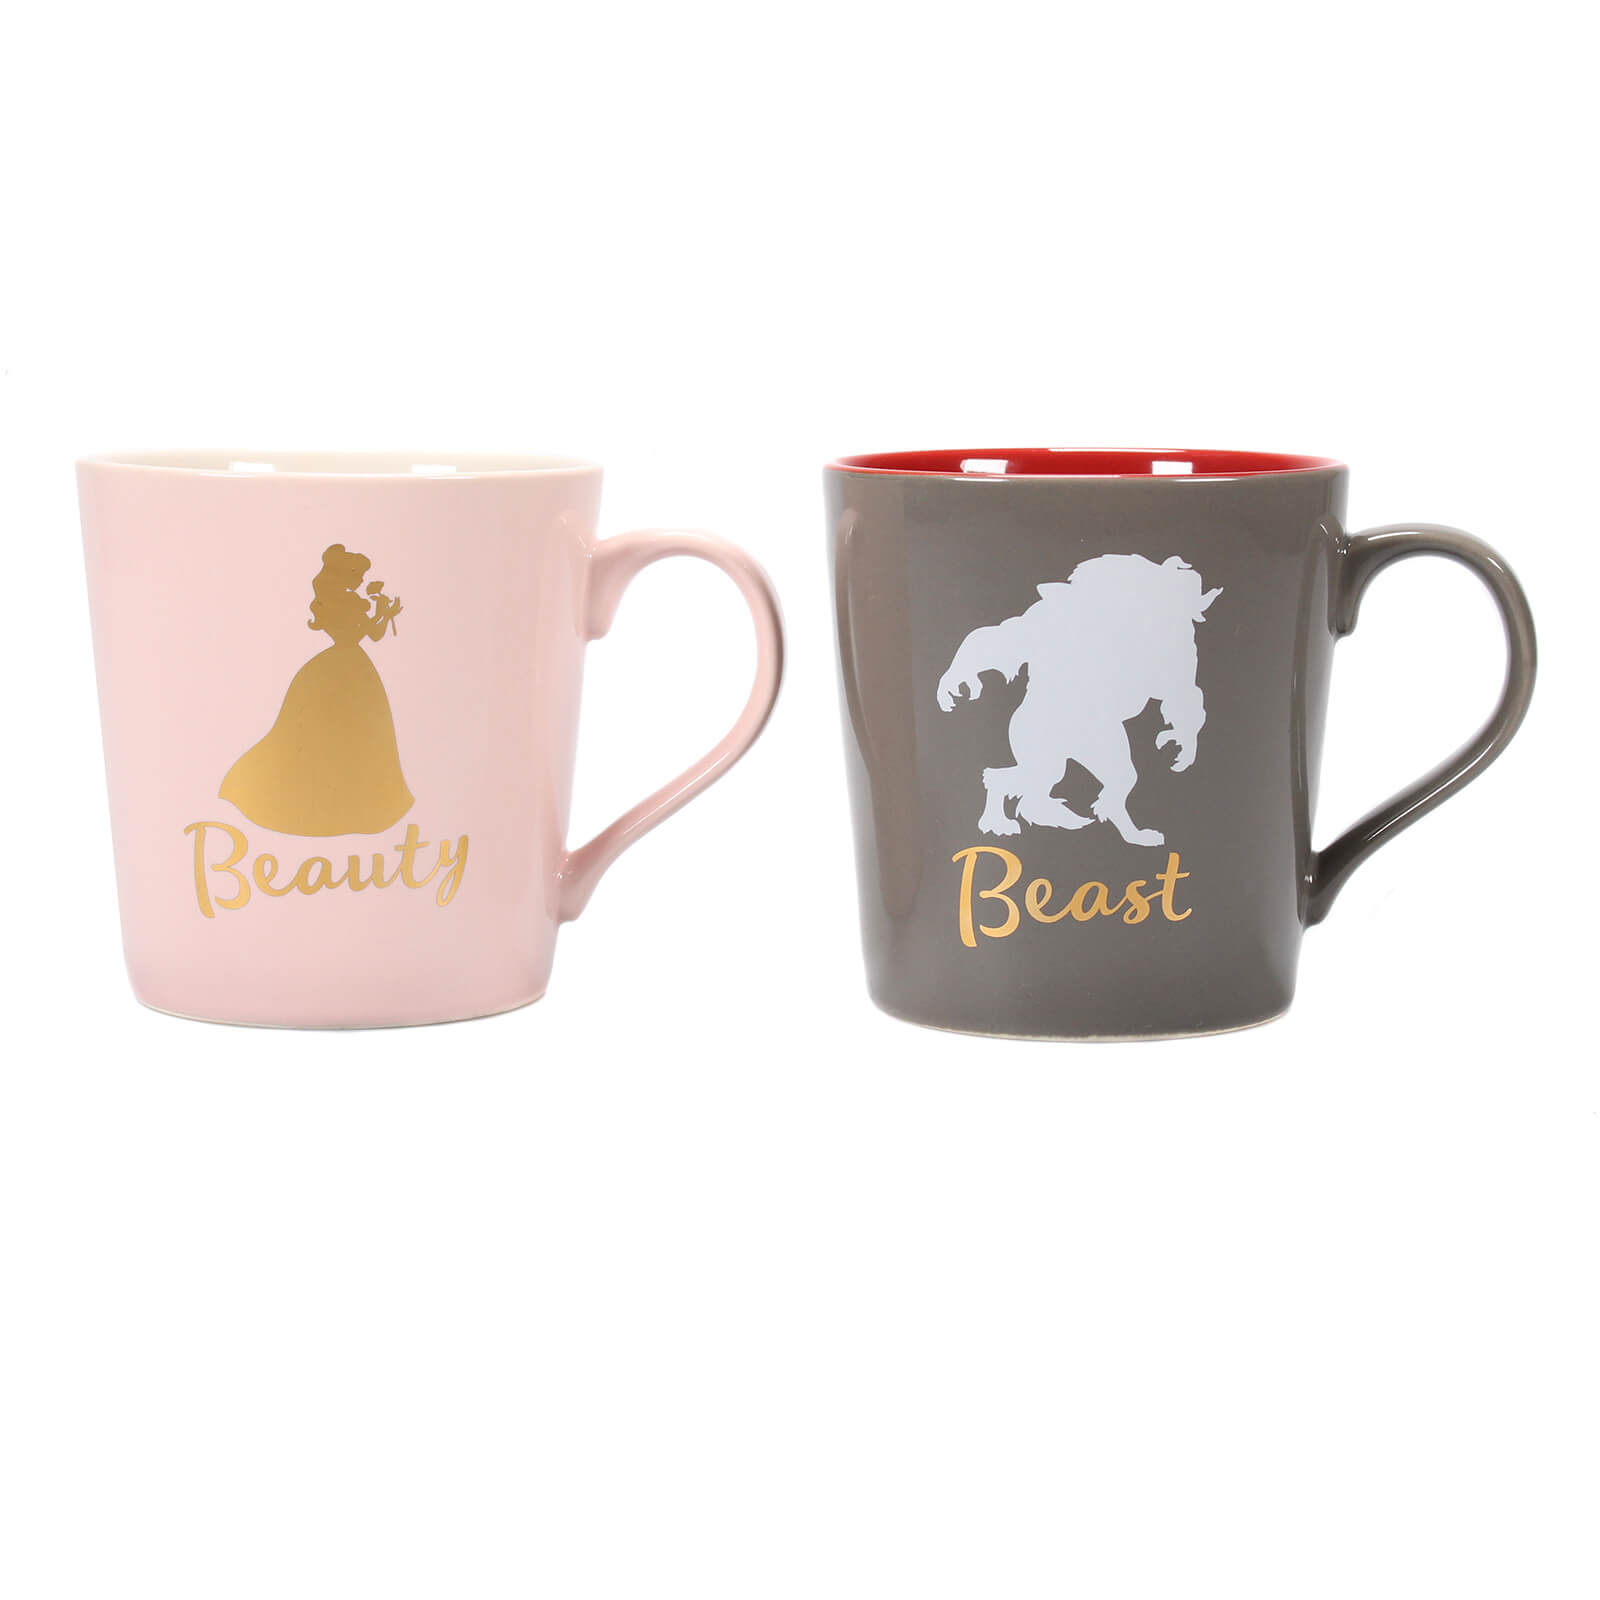 Beauty & The Beast Set of 2 Mugs